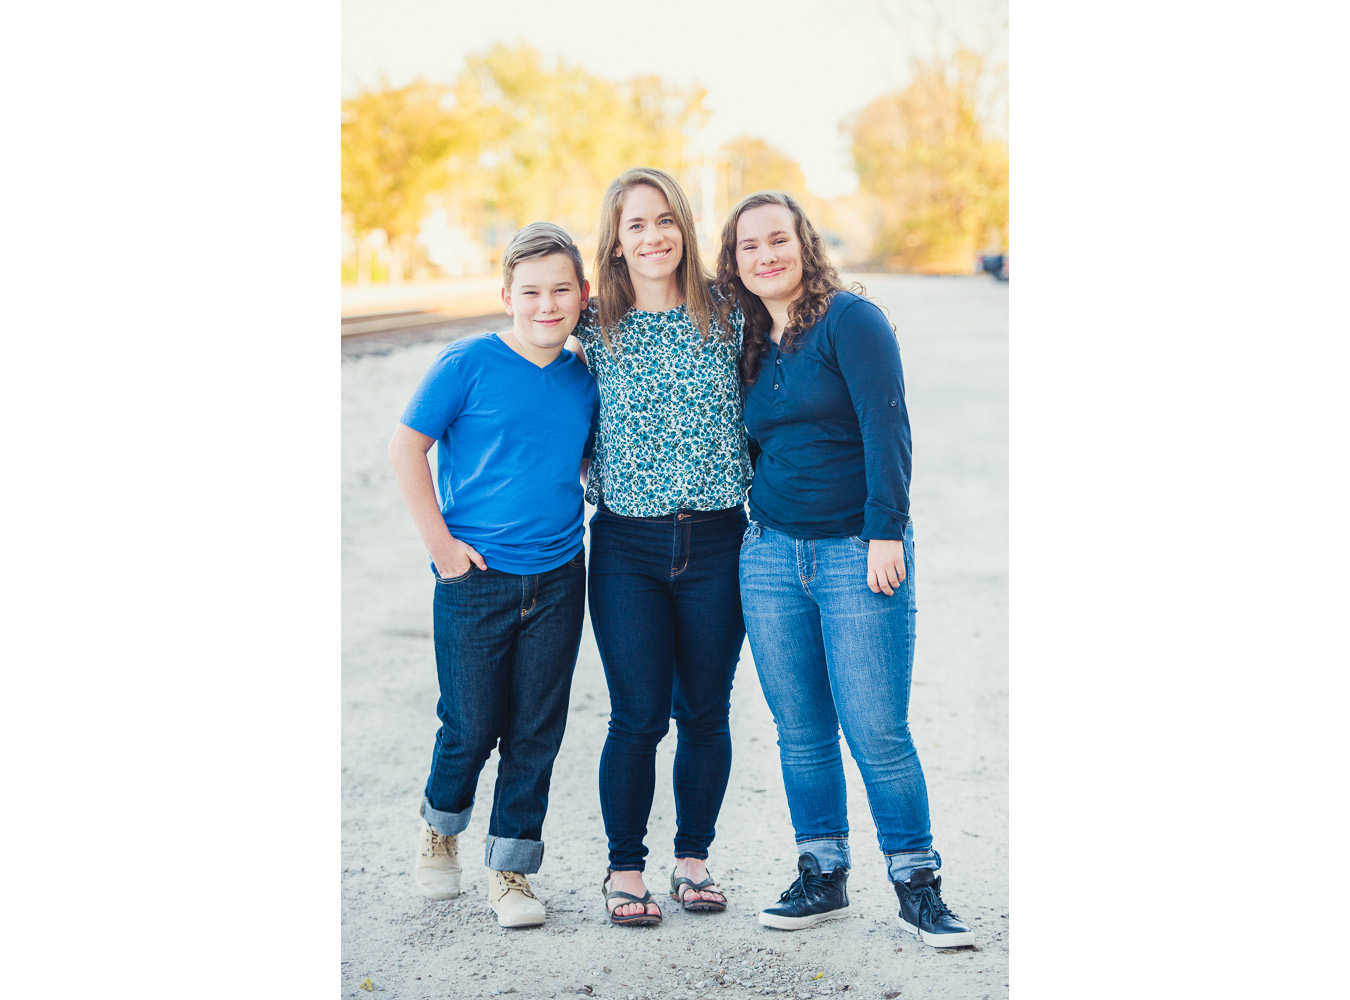 johnson_0001_johnson_family_0004_161116